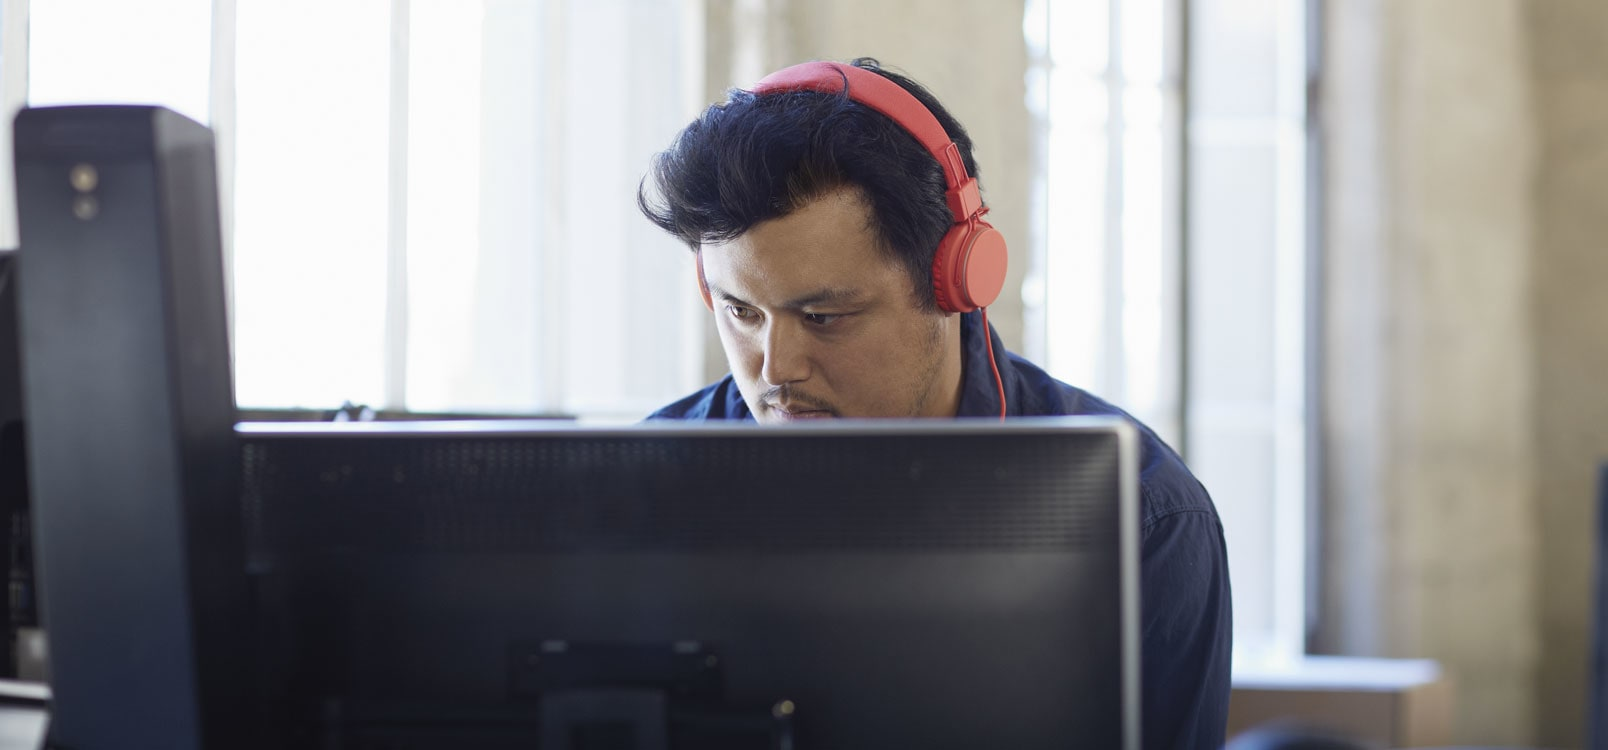 A man wearing headphones working at a desktop PC, using Office 365 to simplify IT.